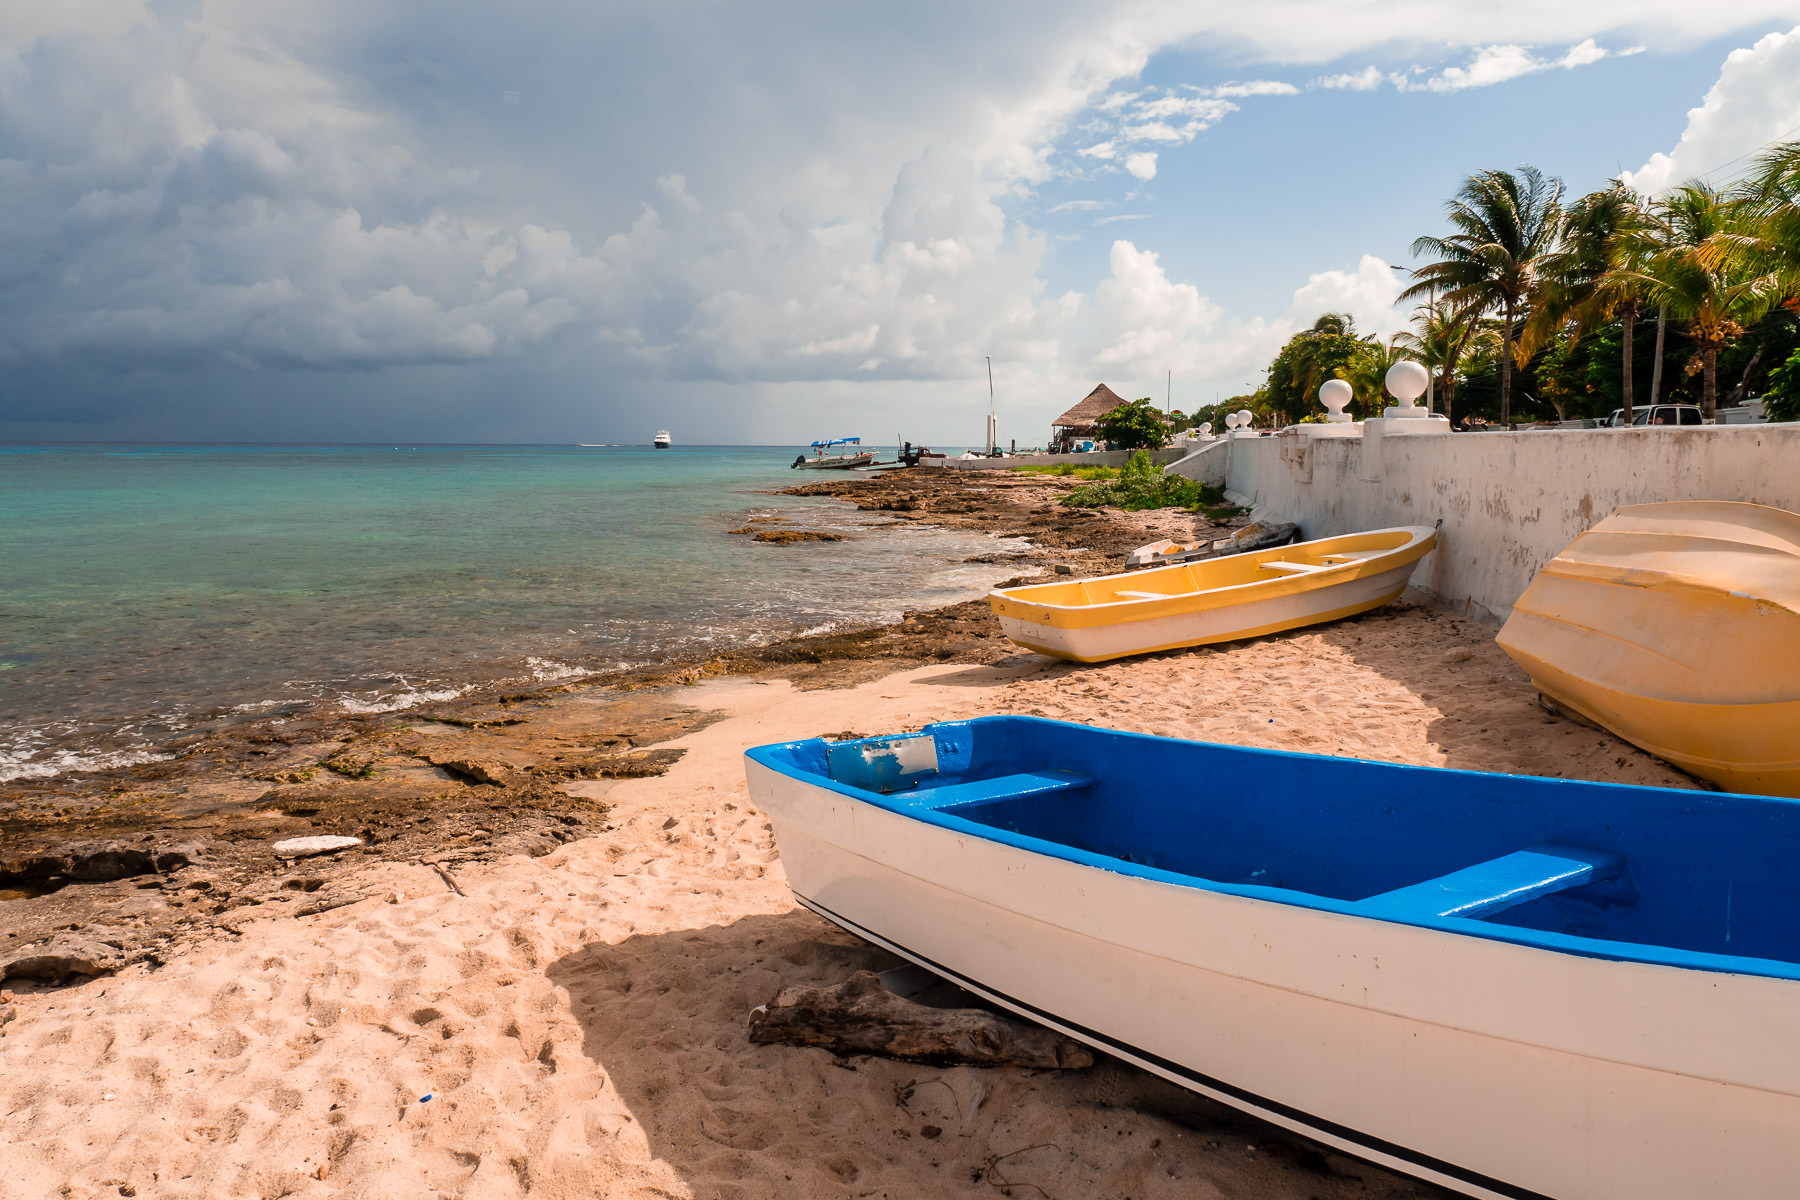 Boats lie on the beach near Downtown San Miguel, Cozumel, Mexico.